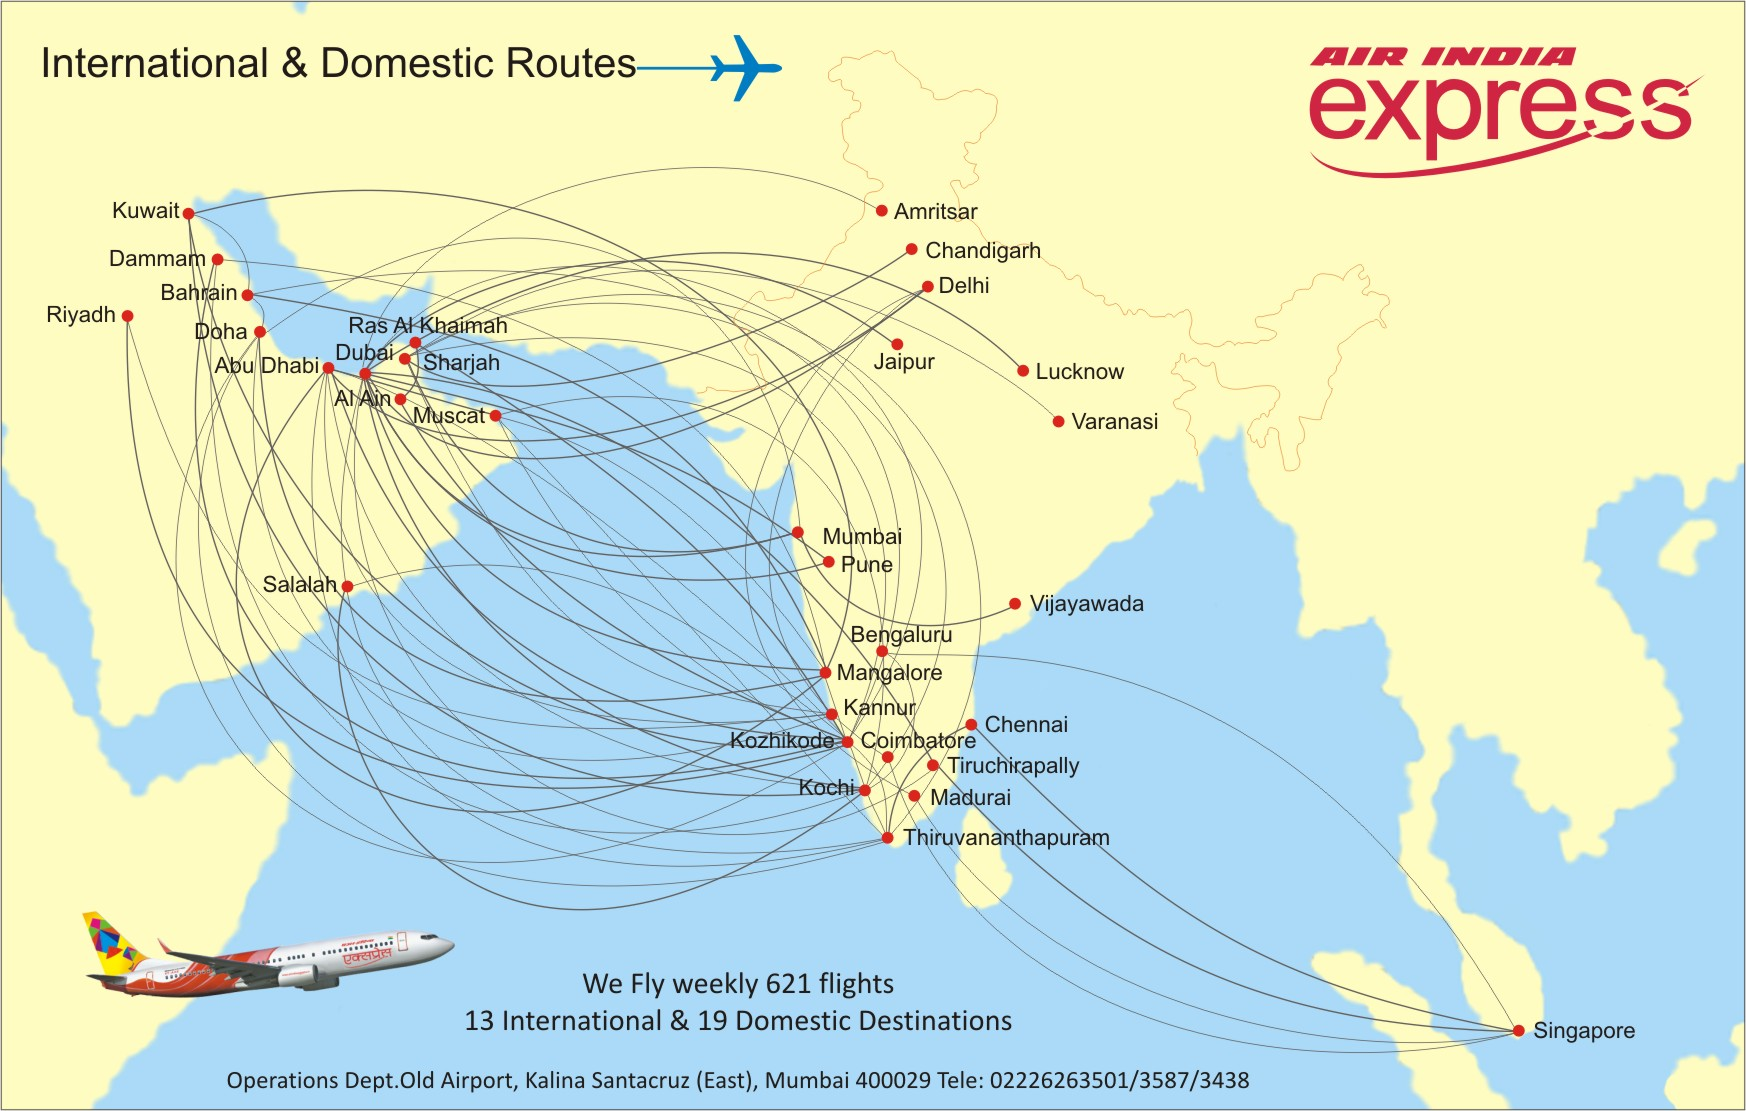 Express Route Map and Schedule | Air India Express